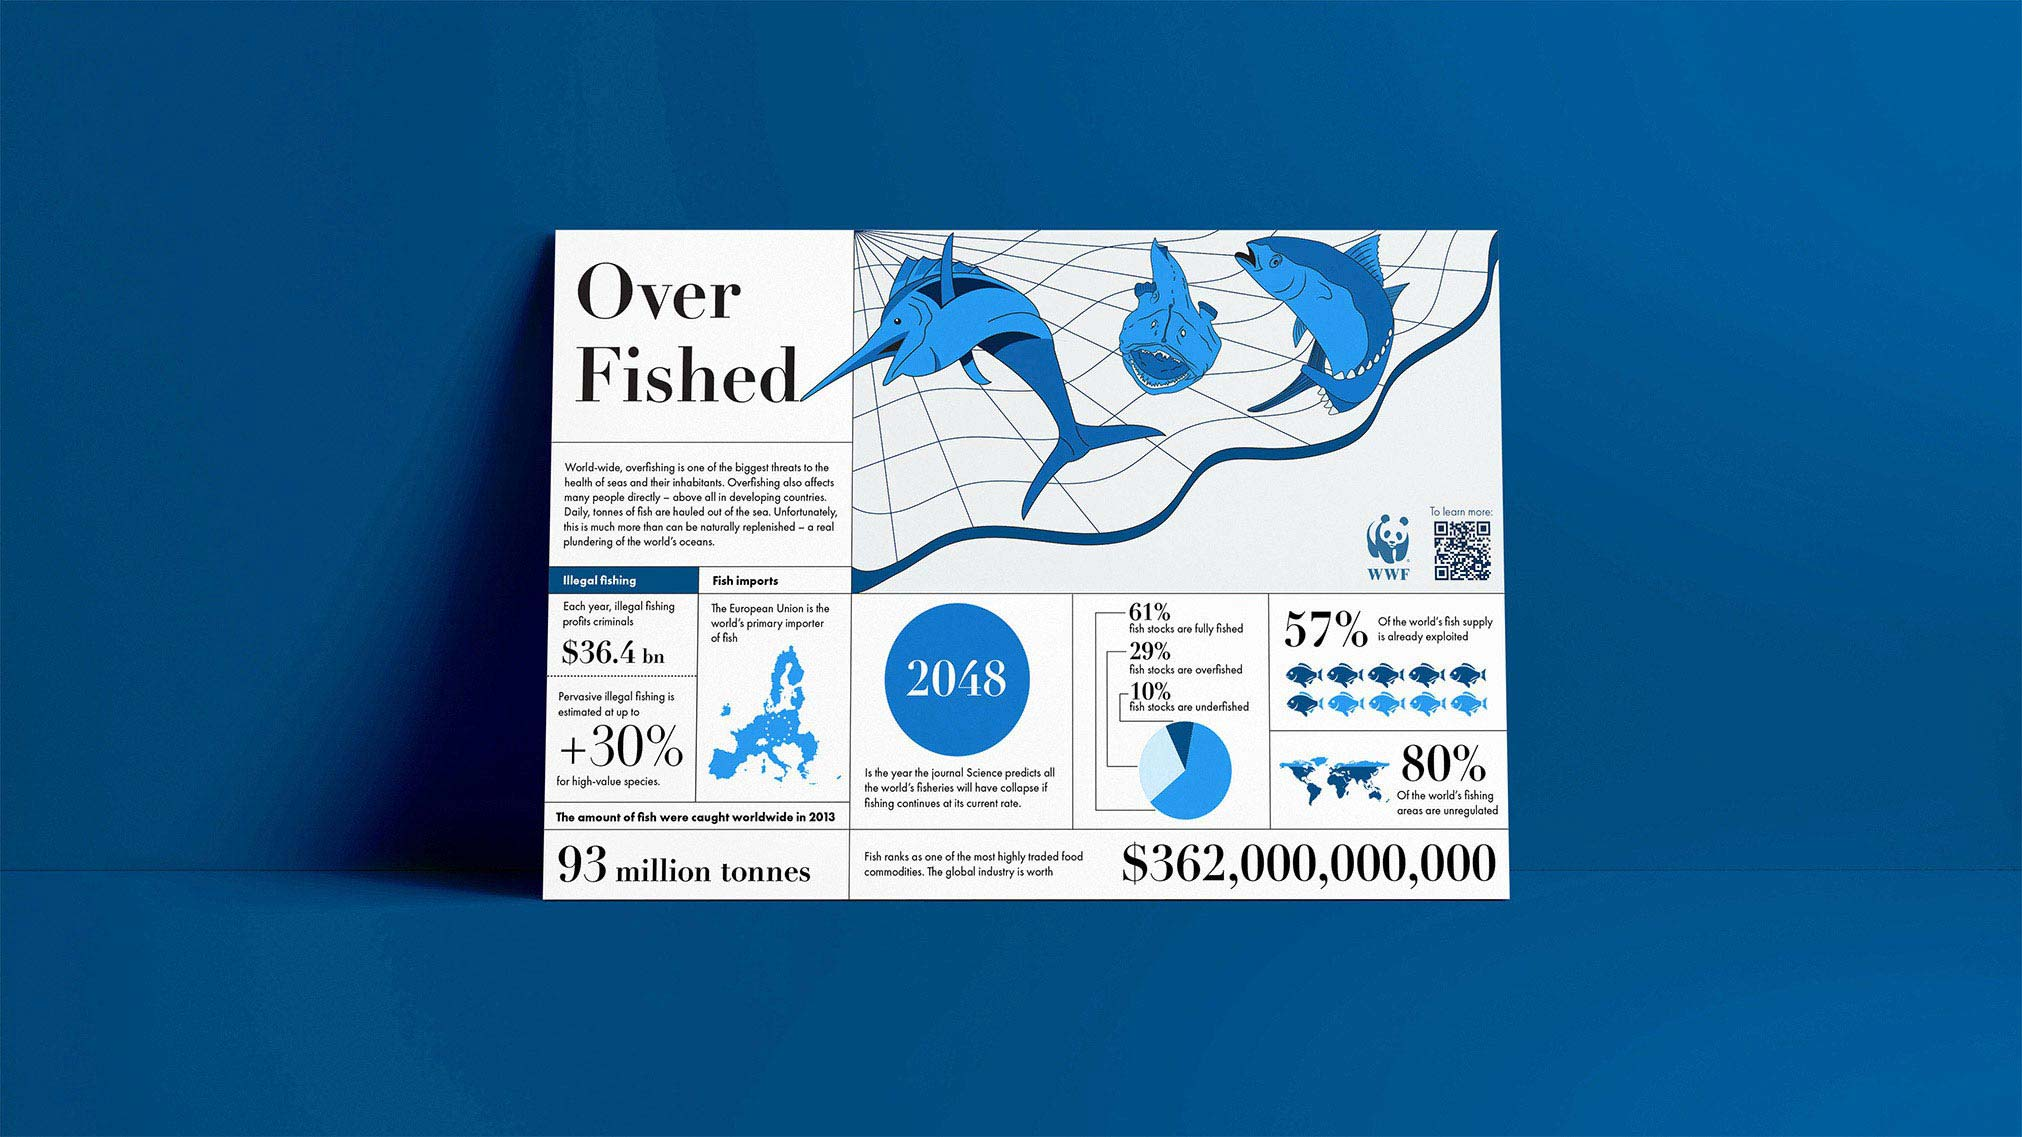 This infographic is to help spread awareness with the correlation of overfishing and global warming. If readers would like to know more they can scan the QR code which leads them to an article for WWF.